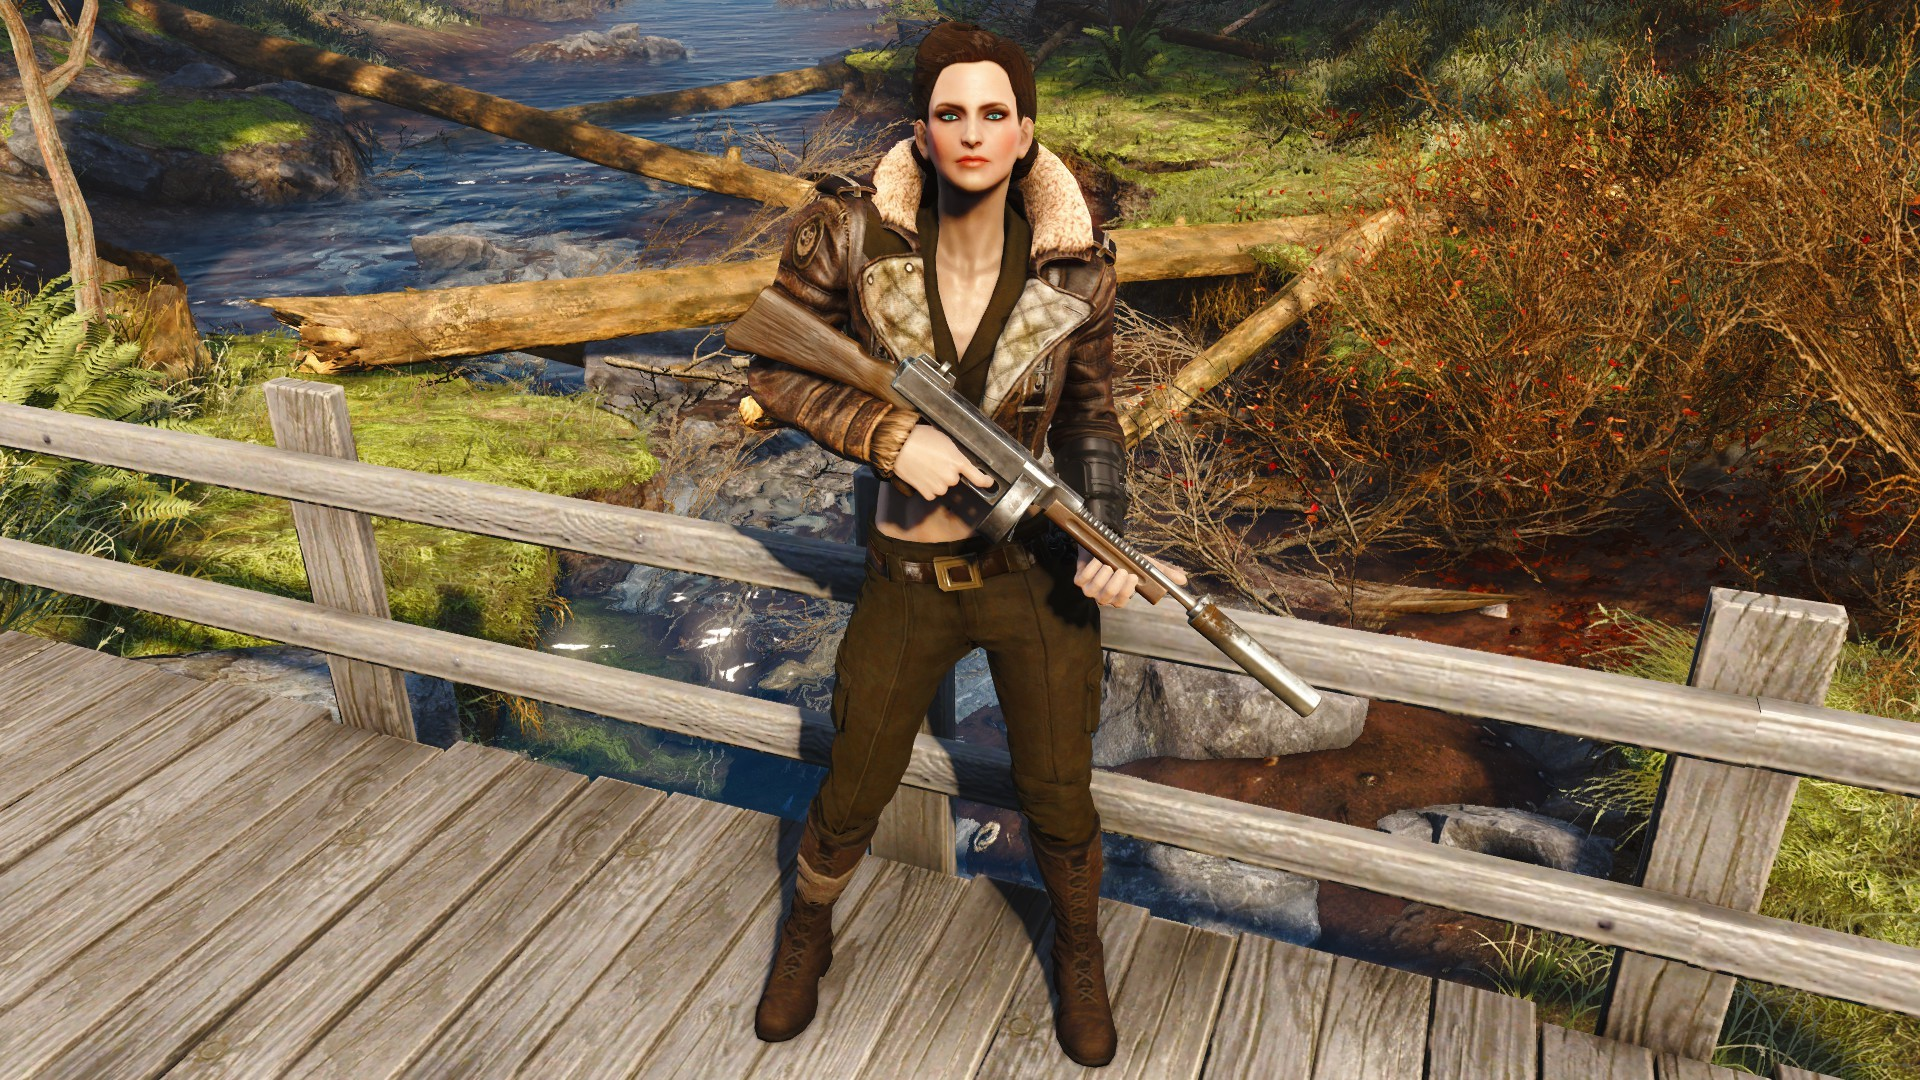 1920x1080 Military Pin-Up Outfit Pack (EVB-CBBE) (AWKCR-AE) at Fallout 4 Nexus - Mods  and community